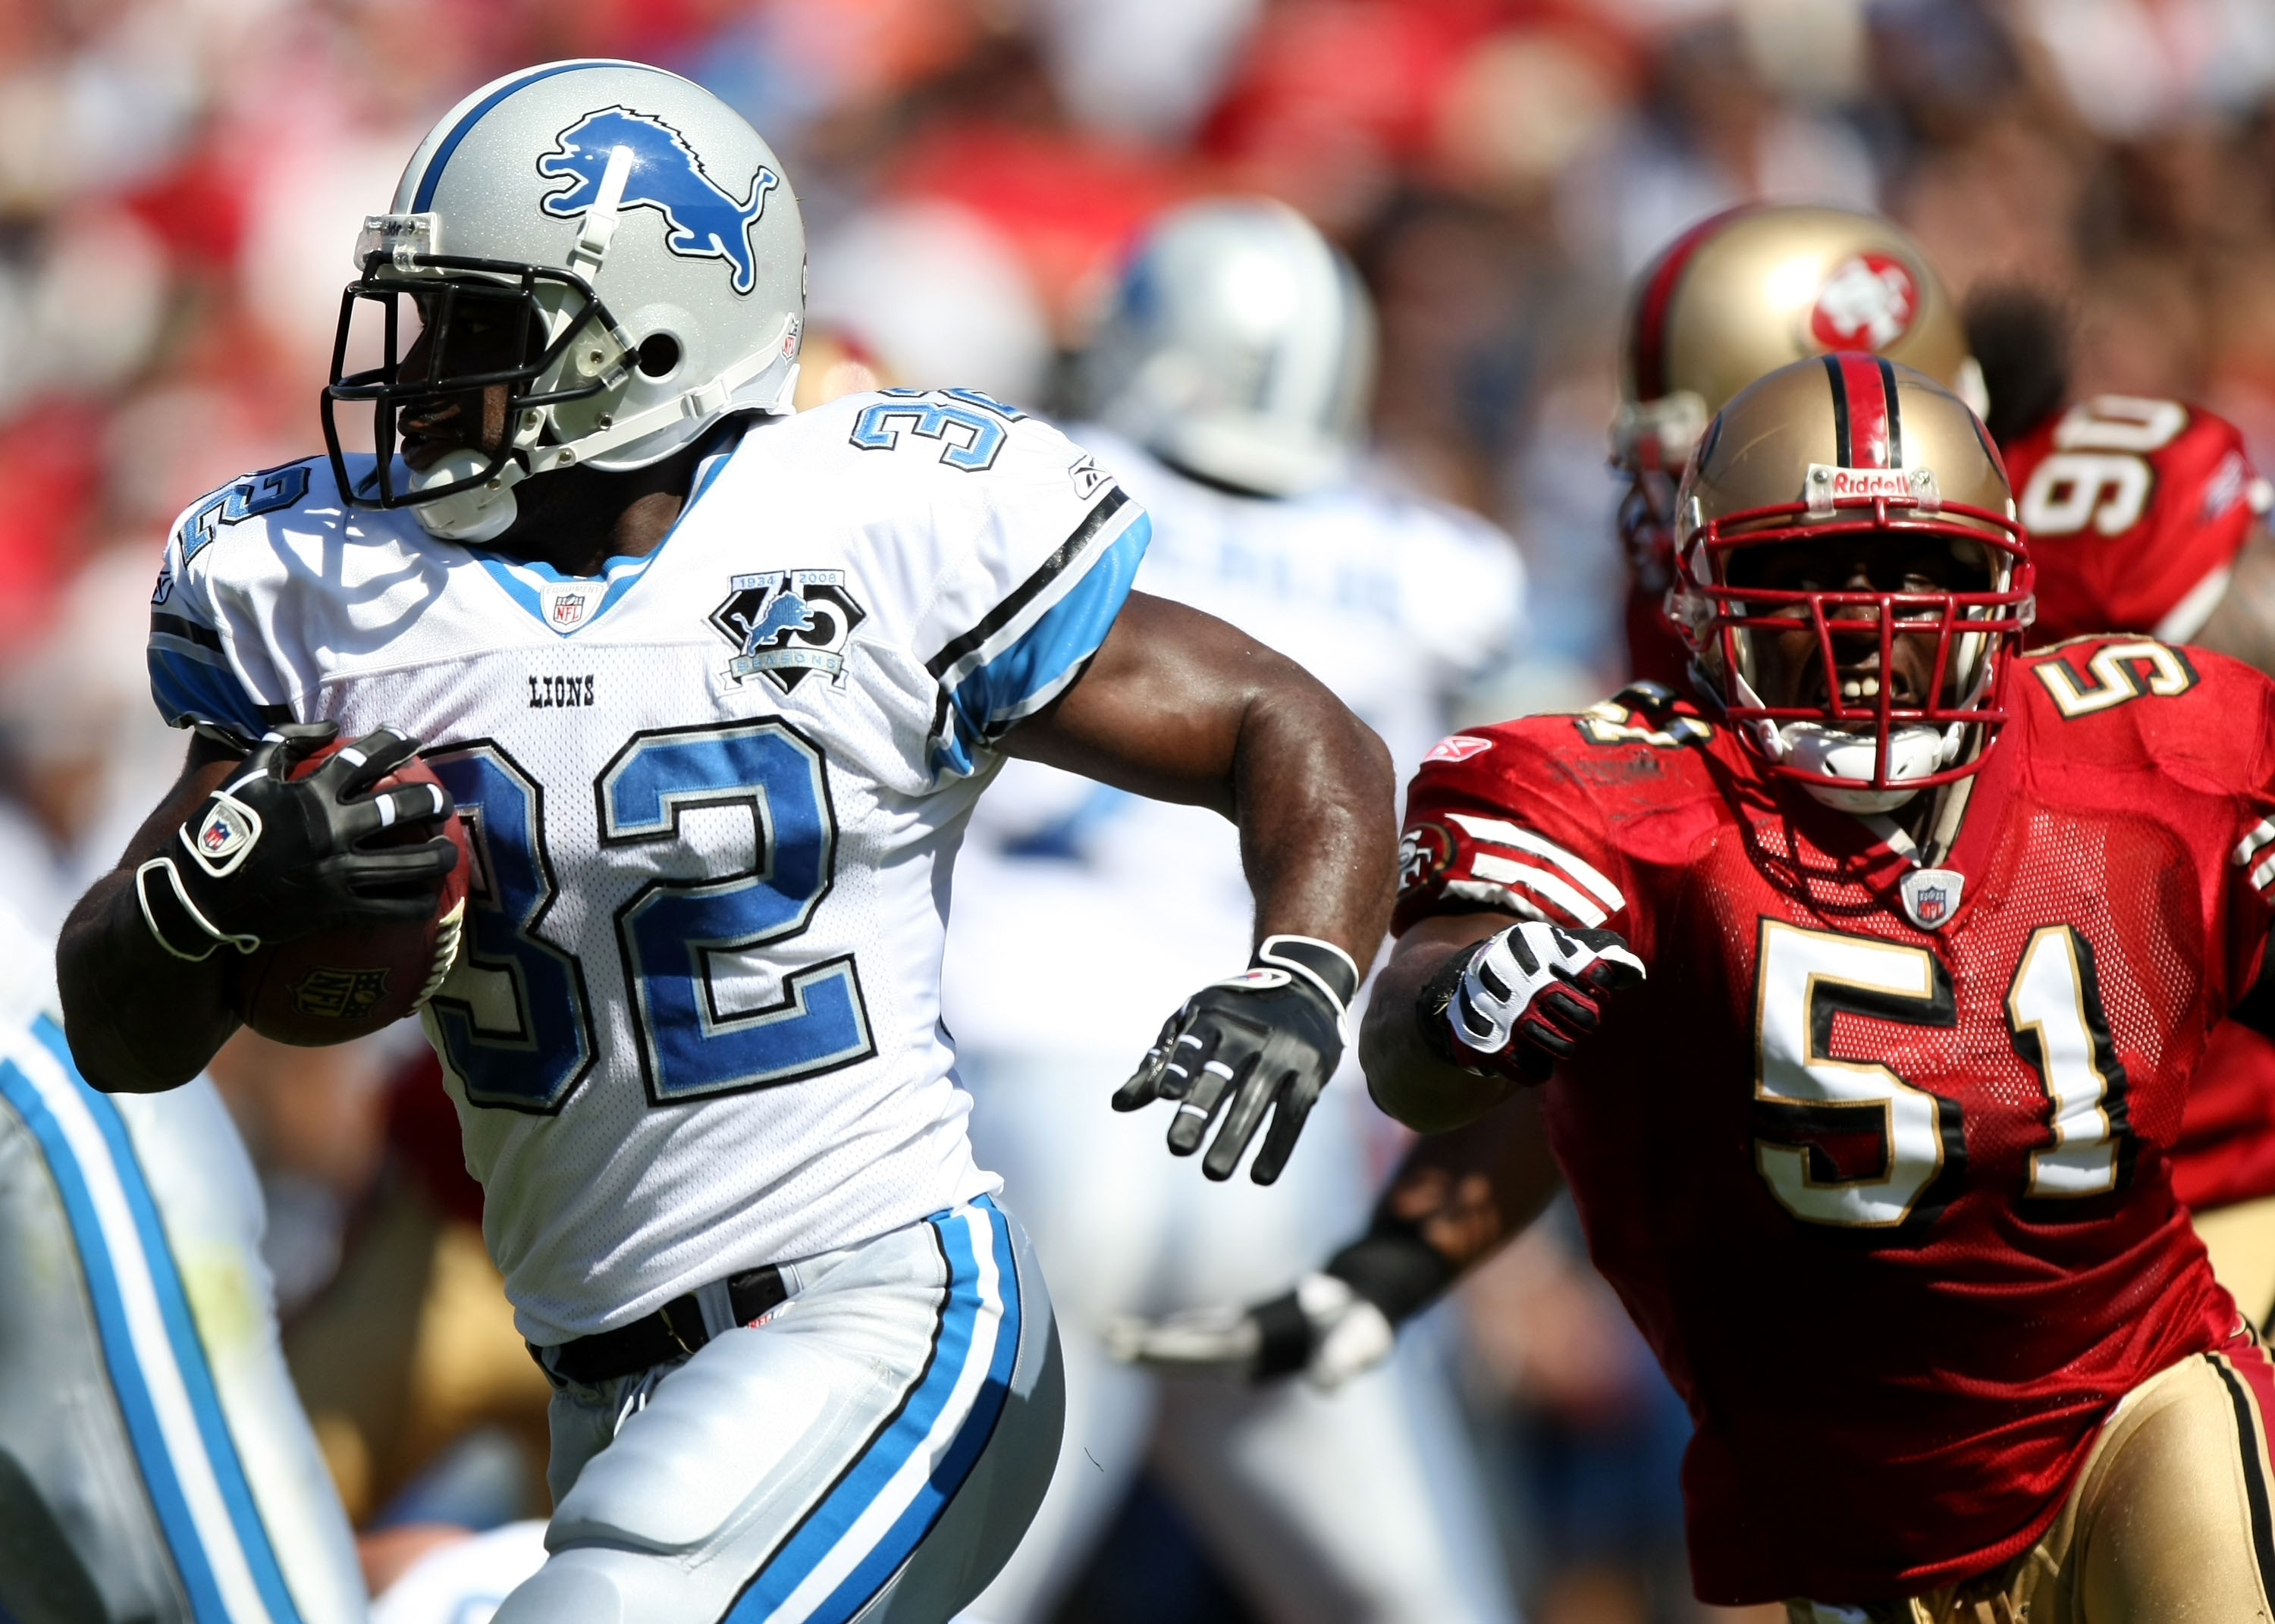 SAN FRANCISCO - SEPTEMBER 21: Rudi Johnson #32 of the Detroit Lions runs against Takeo Spikes #51 of the San Francisco 49ers during an NFL game on September 21, 2008 at Candlestick Park in San Francisco, California.  (Photo by Jed Jacobsohn/Getty Images)